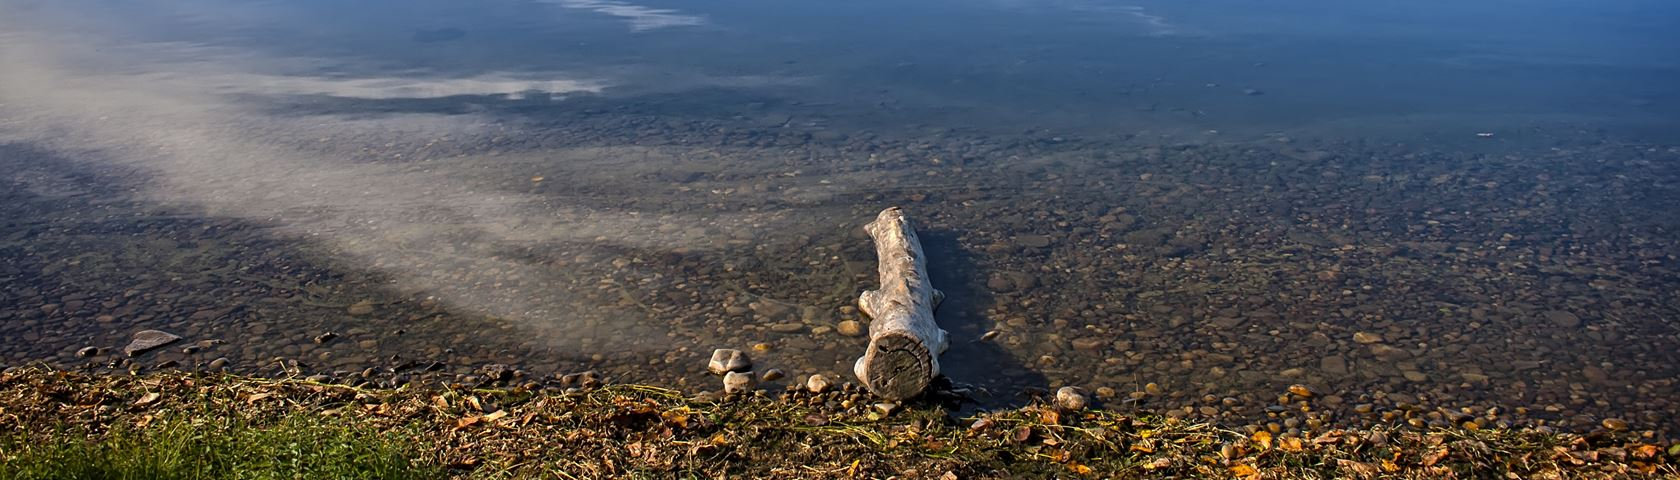 The Lonely Log